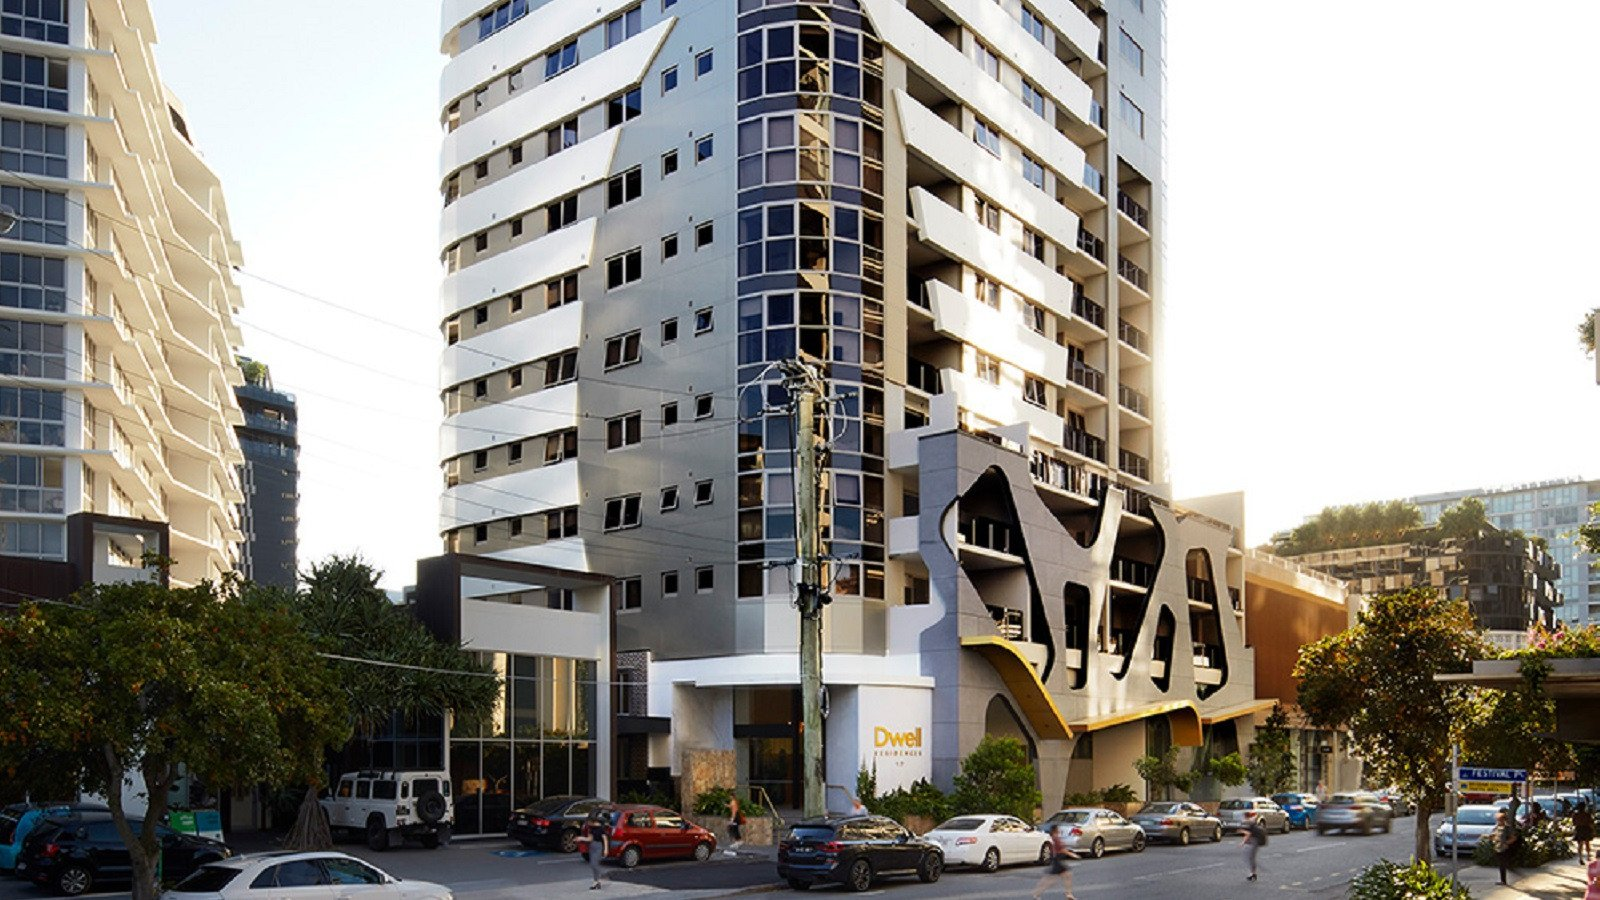 Dwell Apartments-image-3